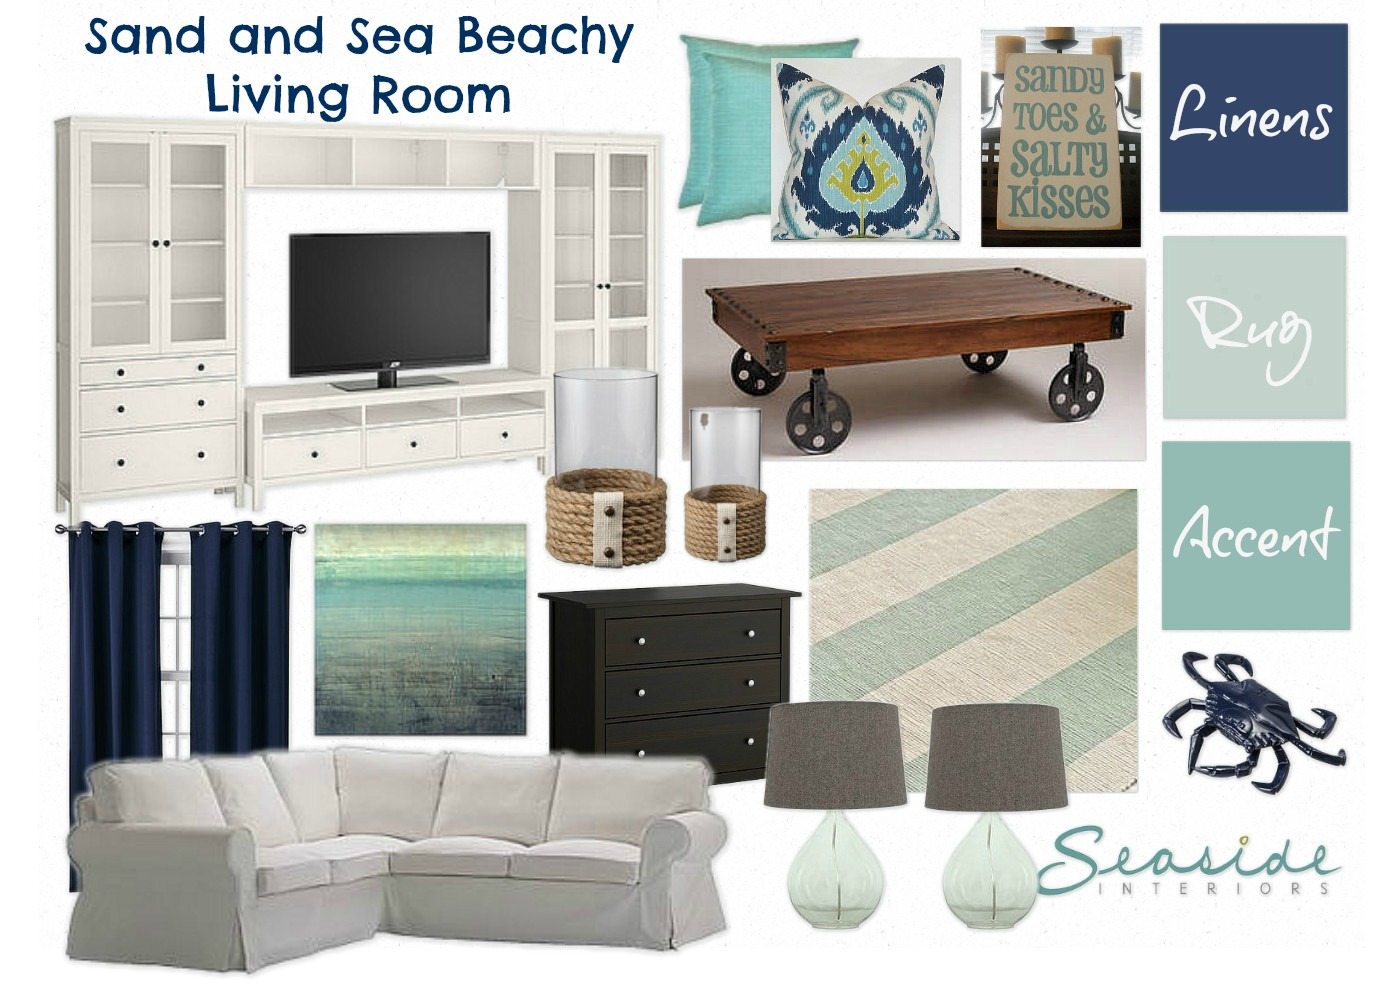 Seaside Interiors Sand And Sea Beachy Living Room In Navy